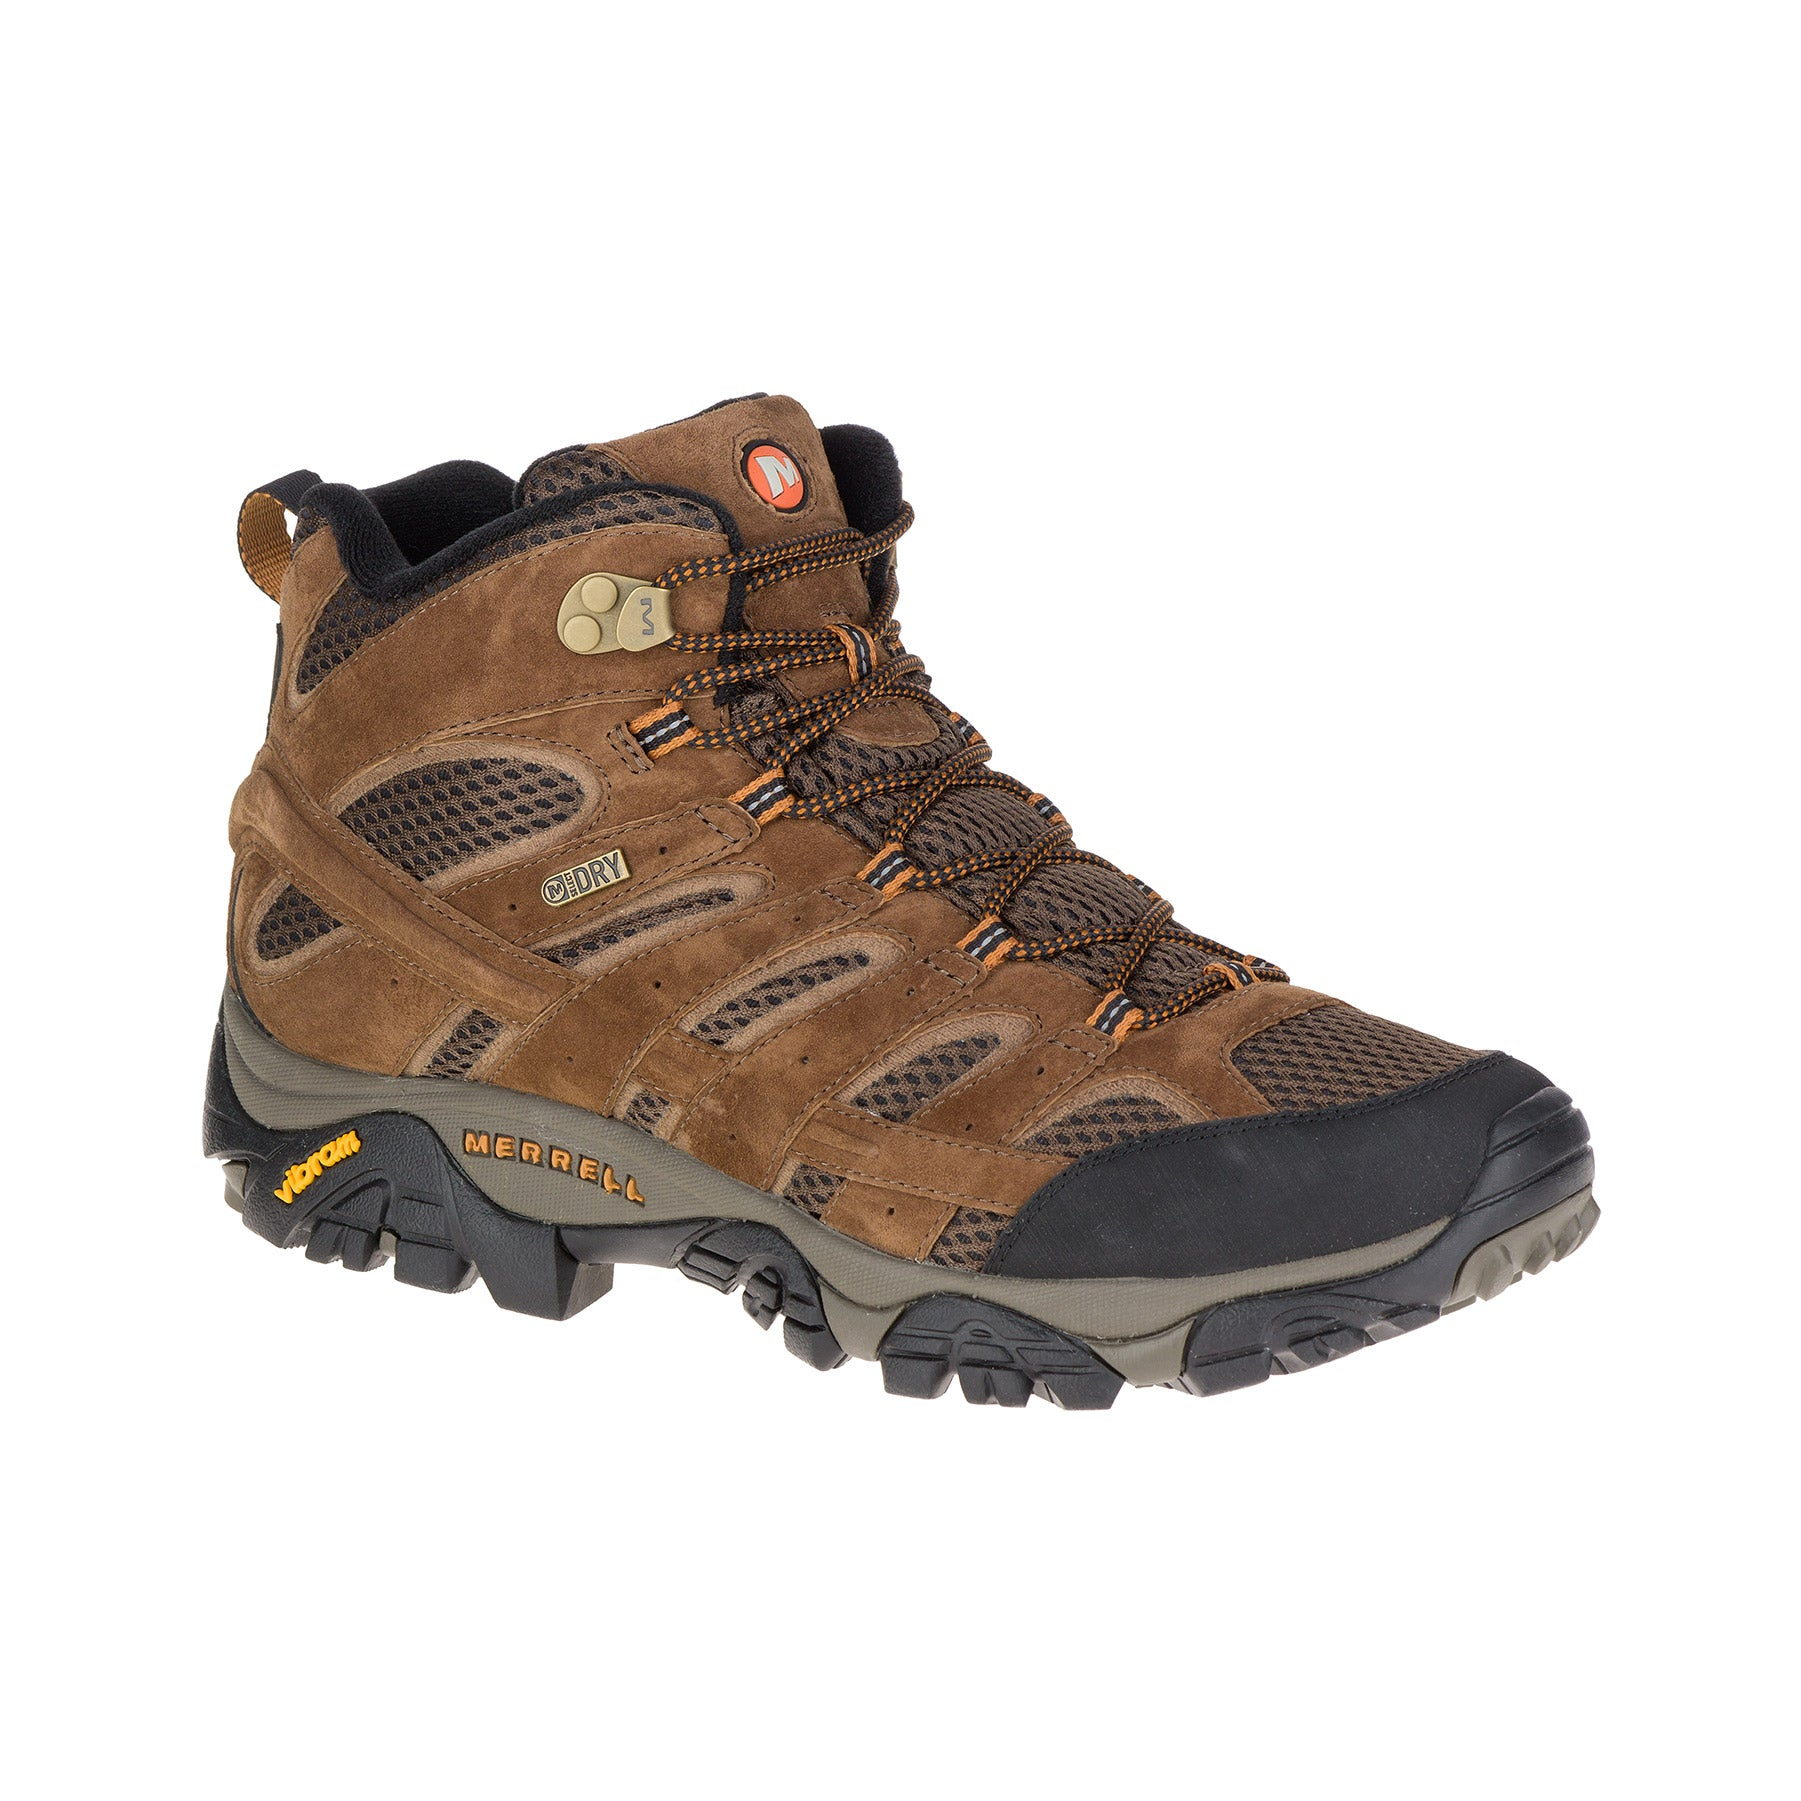 merrell moab 2 mid waterproof wide mens hiking boot side view in color brown